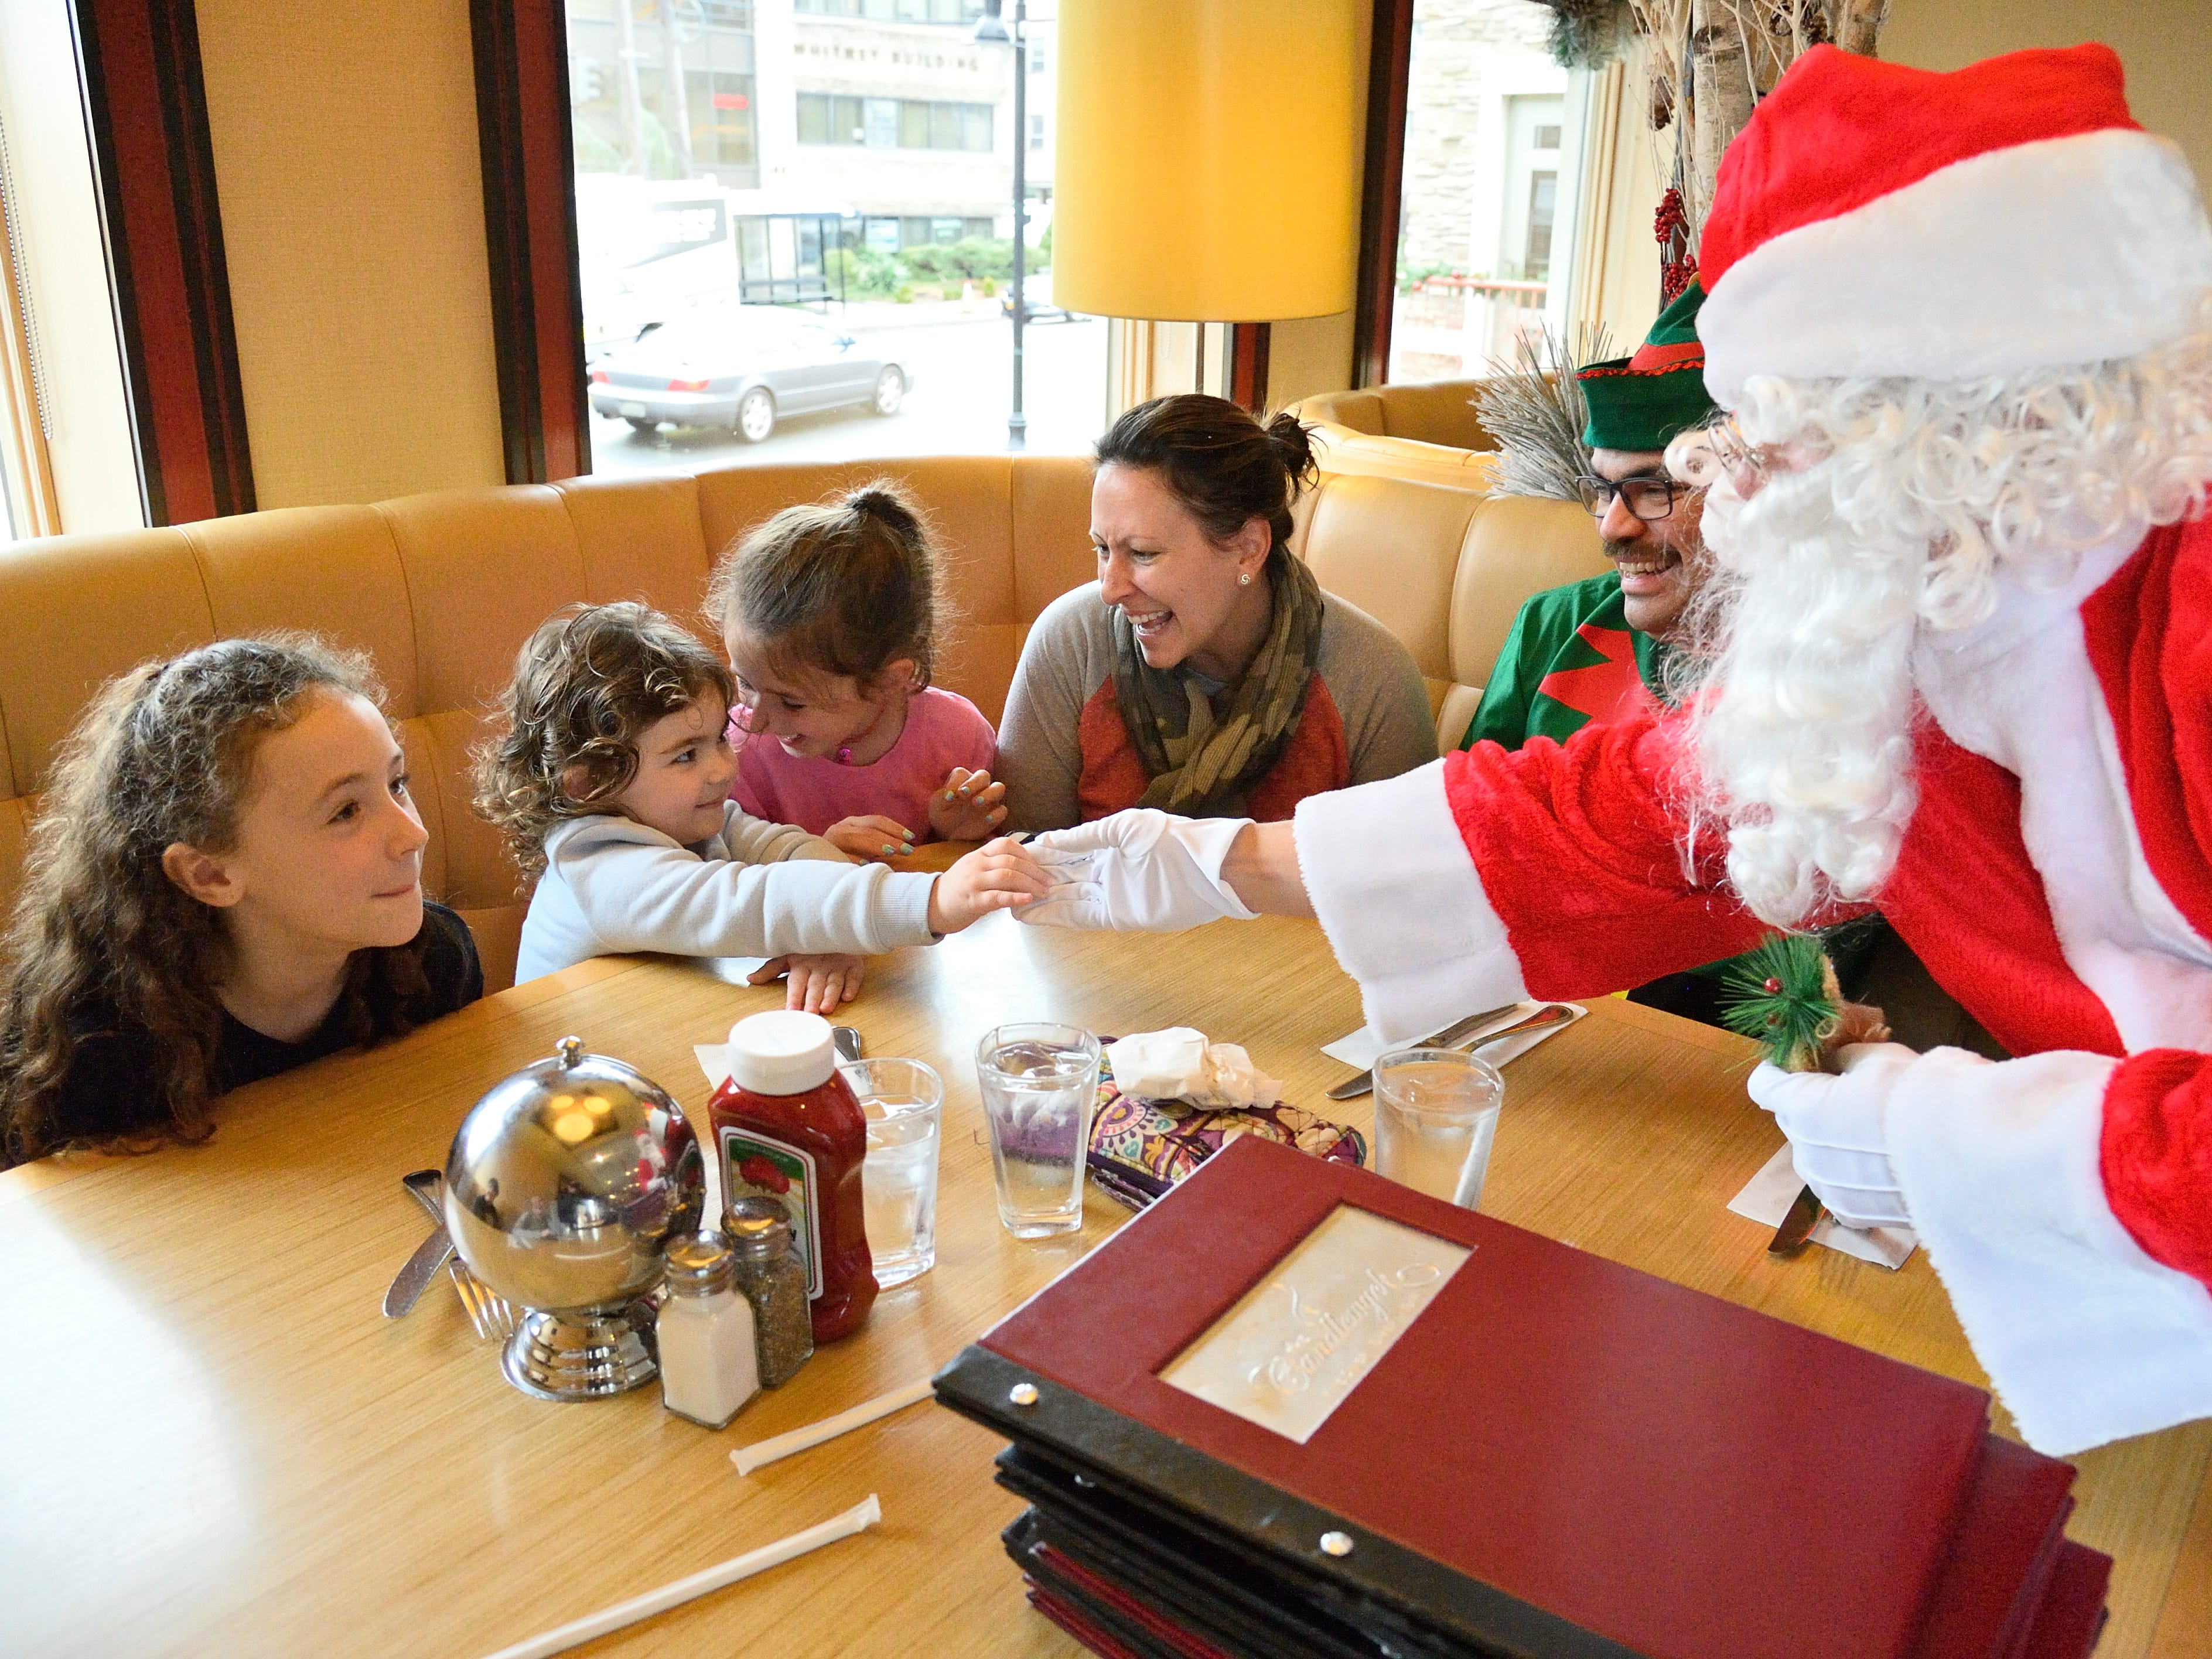 Santa greets, L to R, Kayla Knapp, Rylie Sanchaz, Alexis Floriani, Michele Rubbinaccio and Rafael Sanchez the Elf at the Candlewyck Diner in East Rutherford on Saturday, Dec. 15, 2018